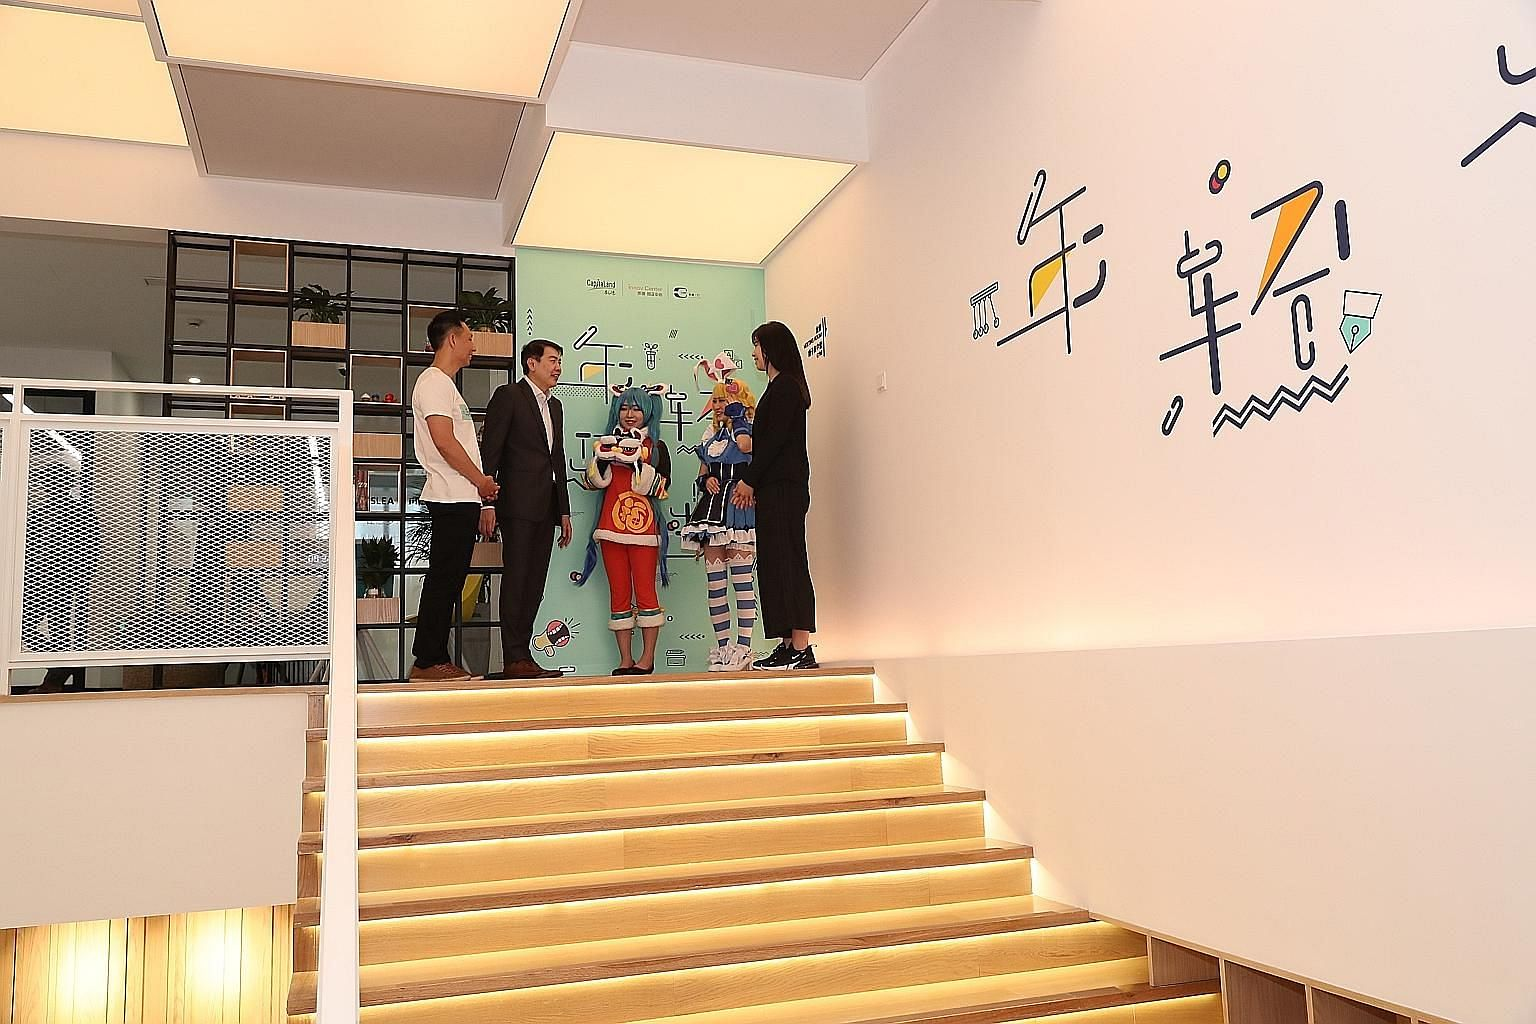 CapitaLand president and group chief executive Lim Ming Yan (in black jacket) with Ms Lufier Wang, vice-president and founder of Fighting.S and her crew. Fighting.S is a tenant of C3 specialising in cosplay events and talent management. The space has